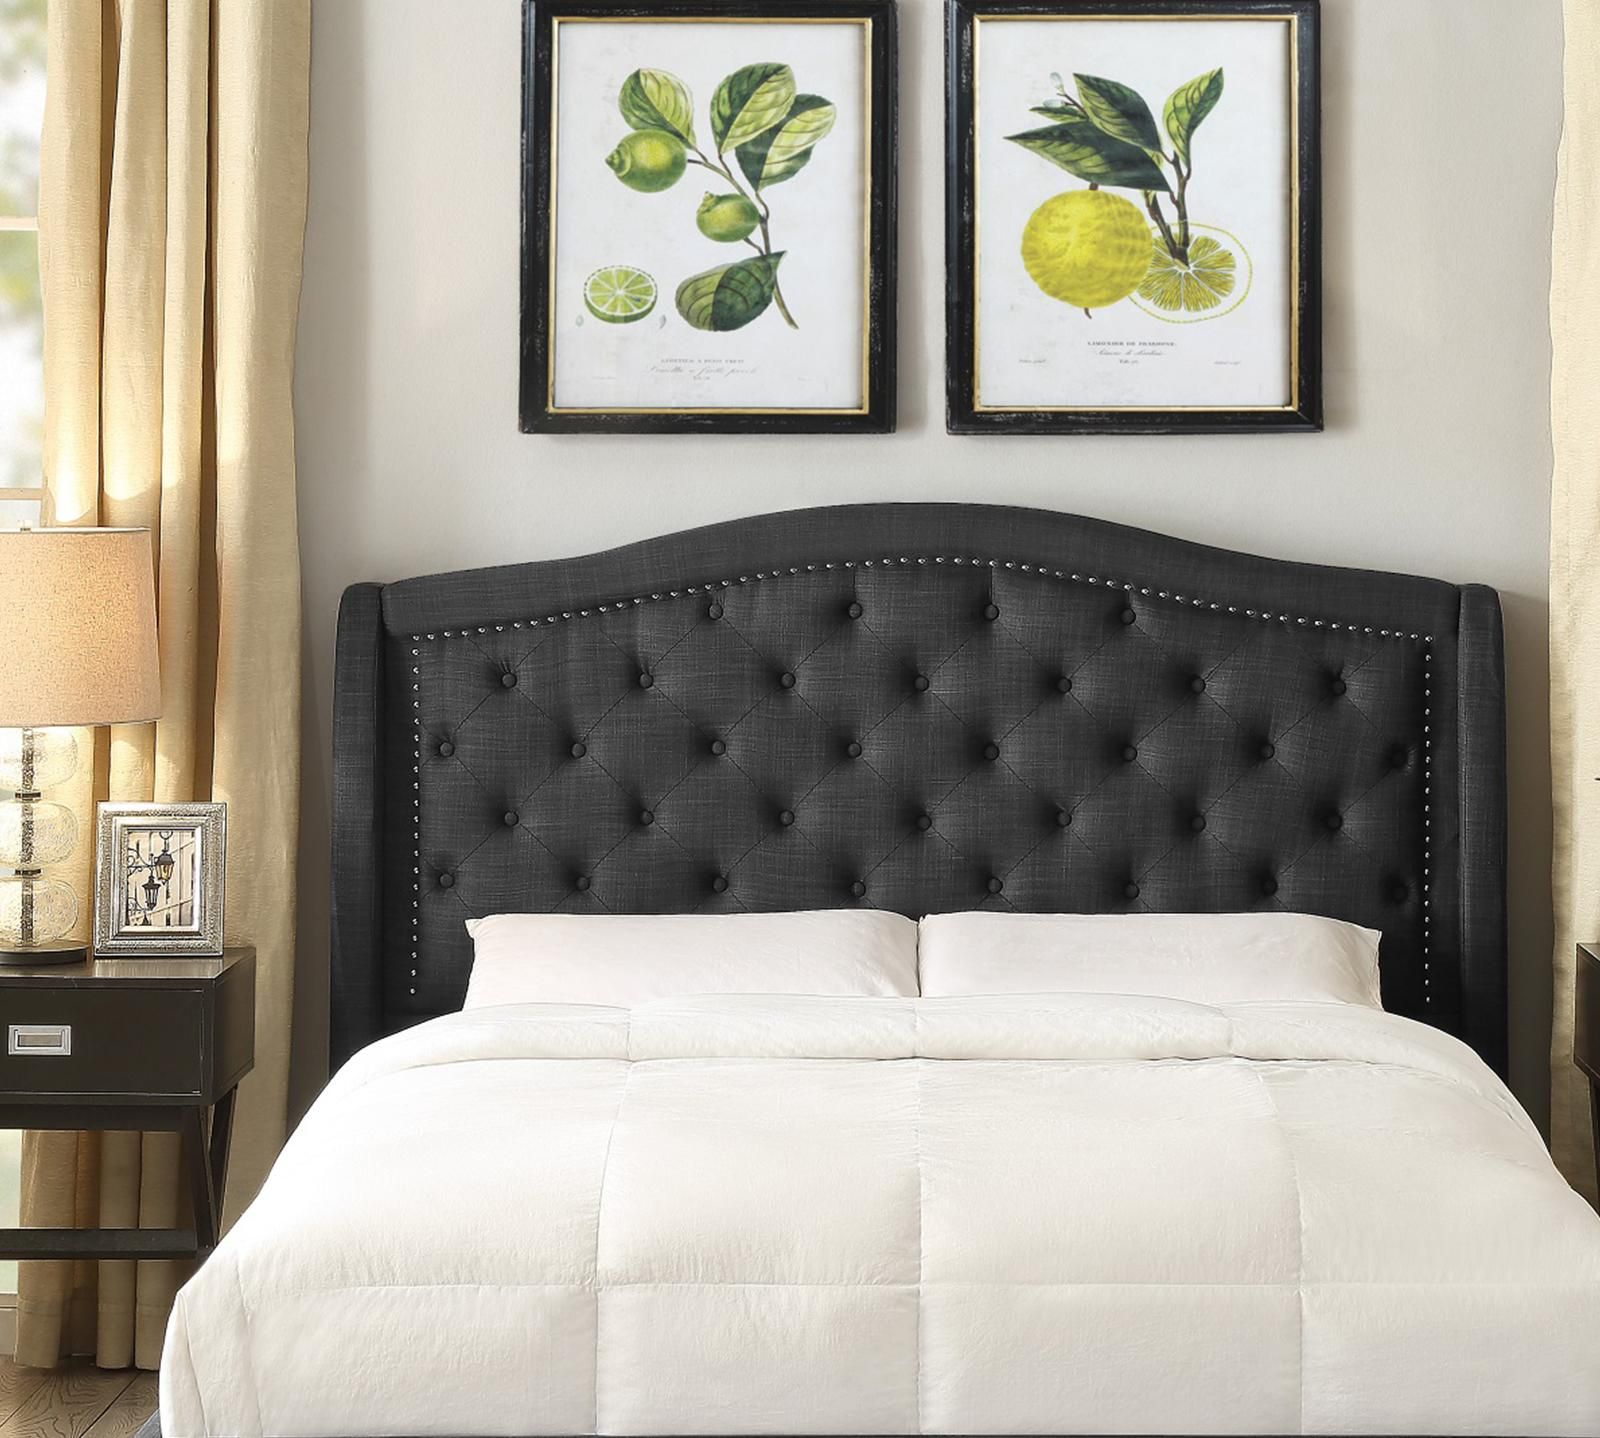 Use of the headboards and footboards Headboards for beds